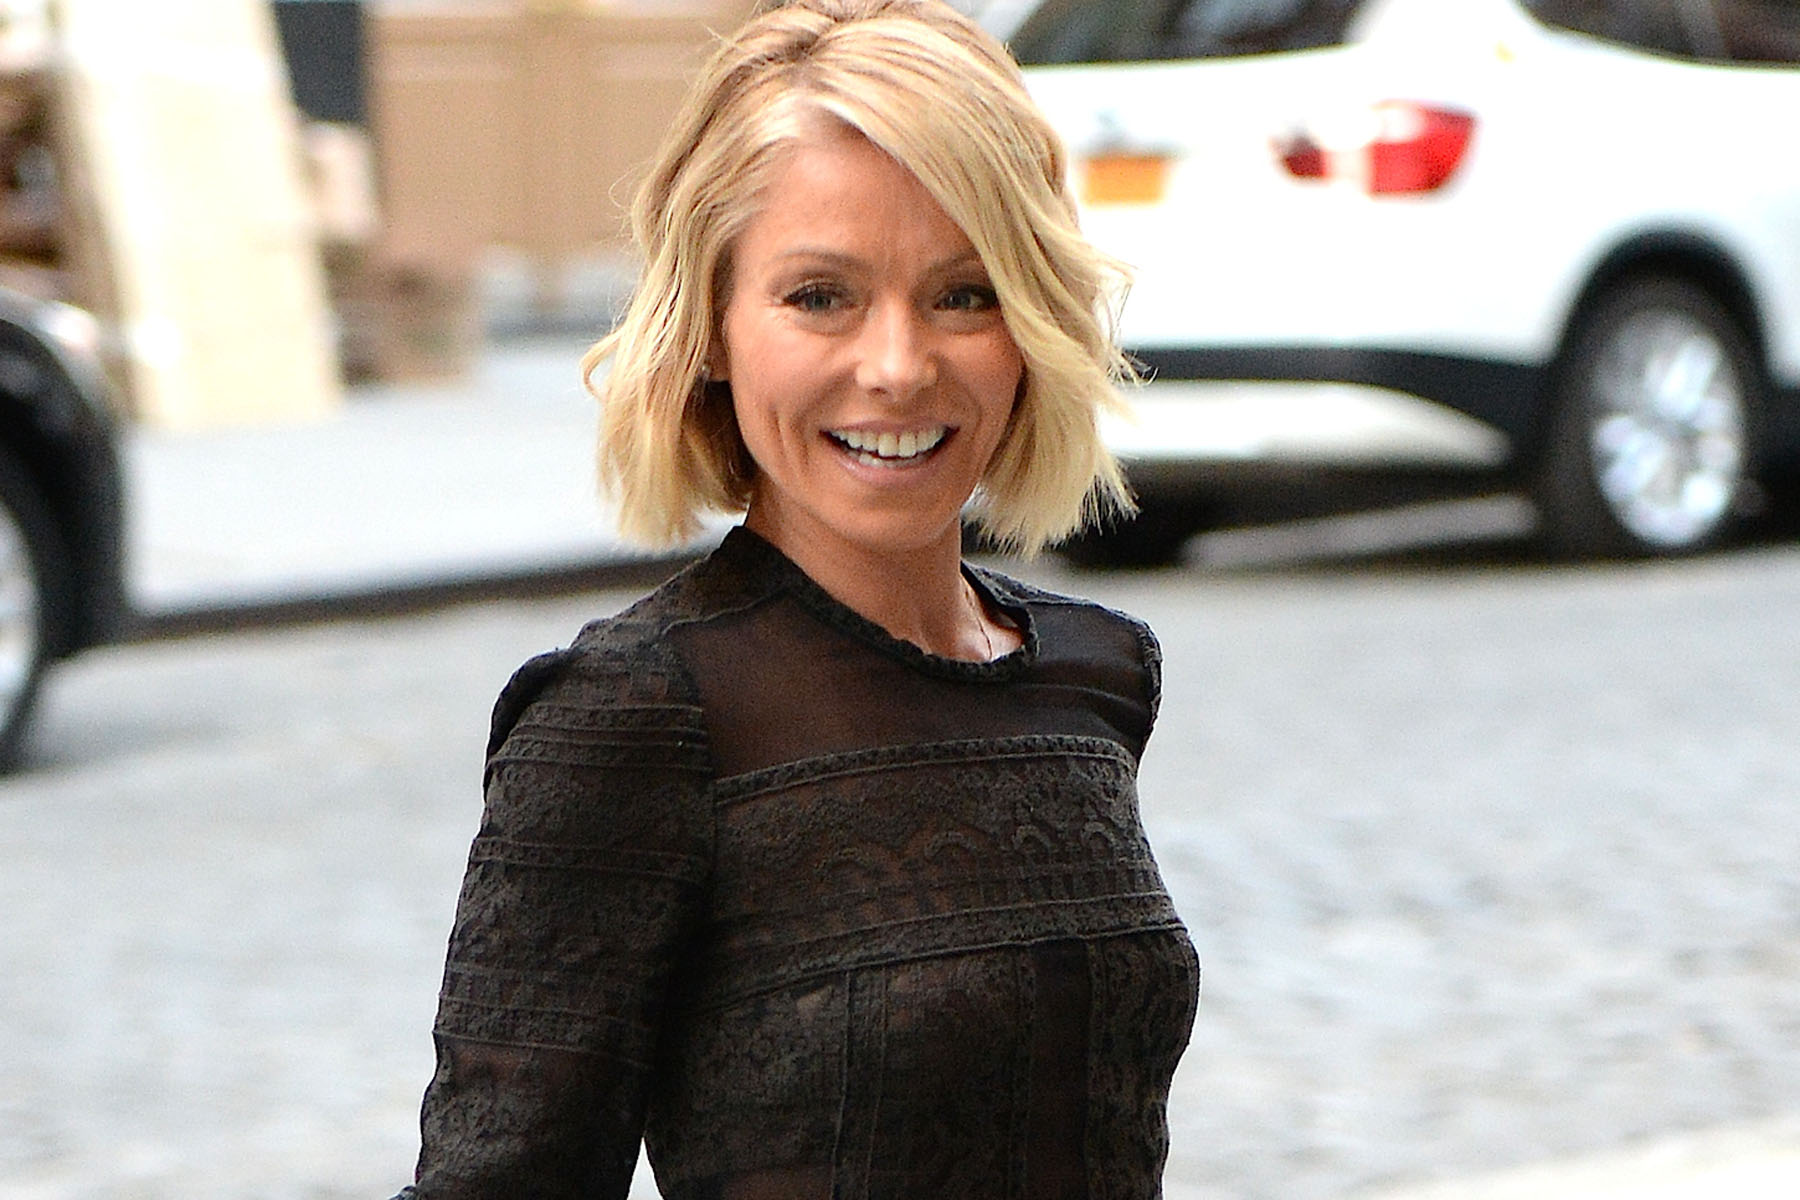 Kelly ripa black color dress photos